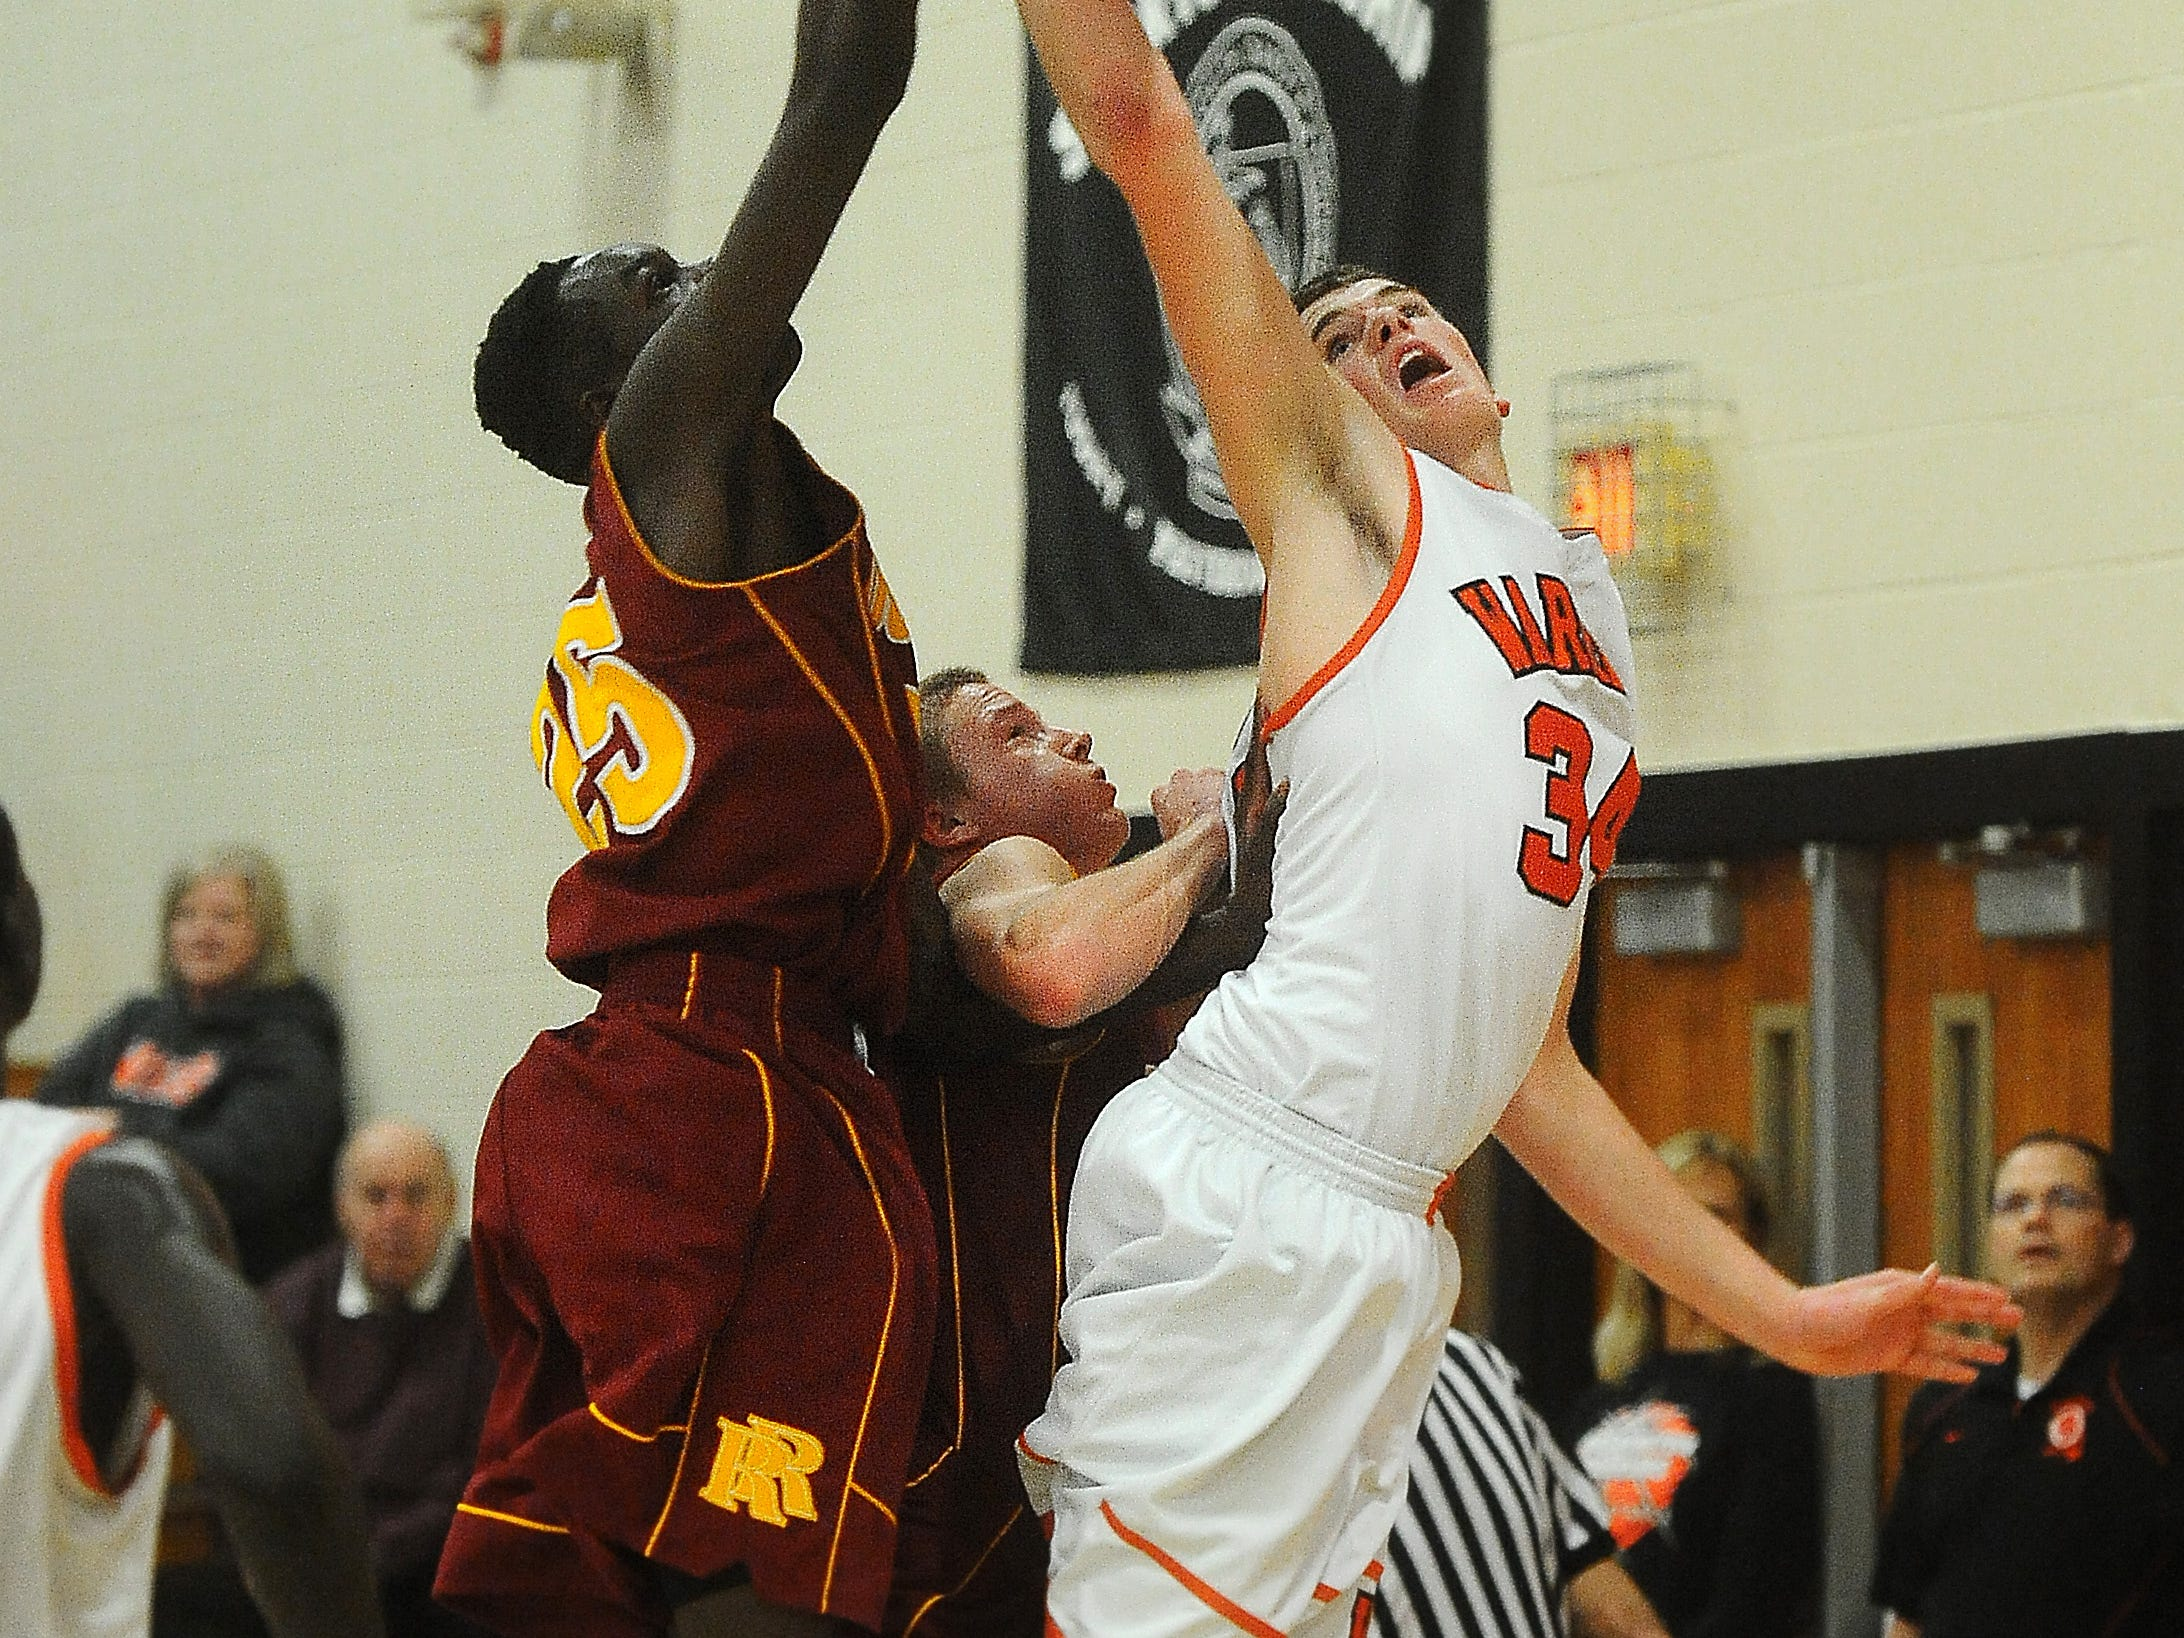 Washington's Cole Benson goes up for a shot while Roosevelt's Mayuen Akok (left) and Jett Thune defend during their game at Washington High School on Tuesday, Dec. 16, 2014.